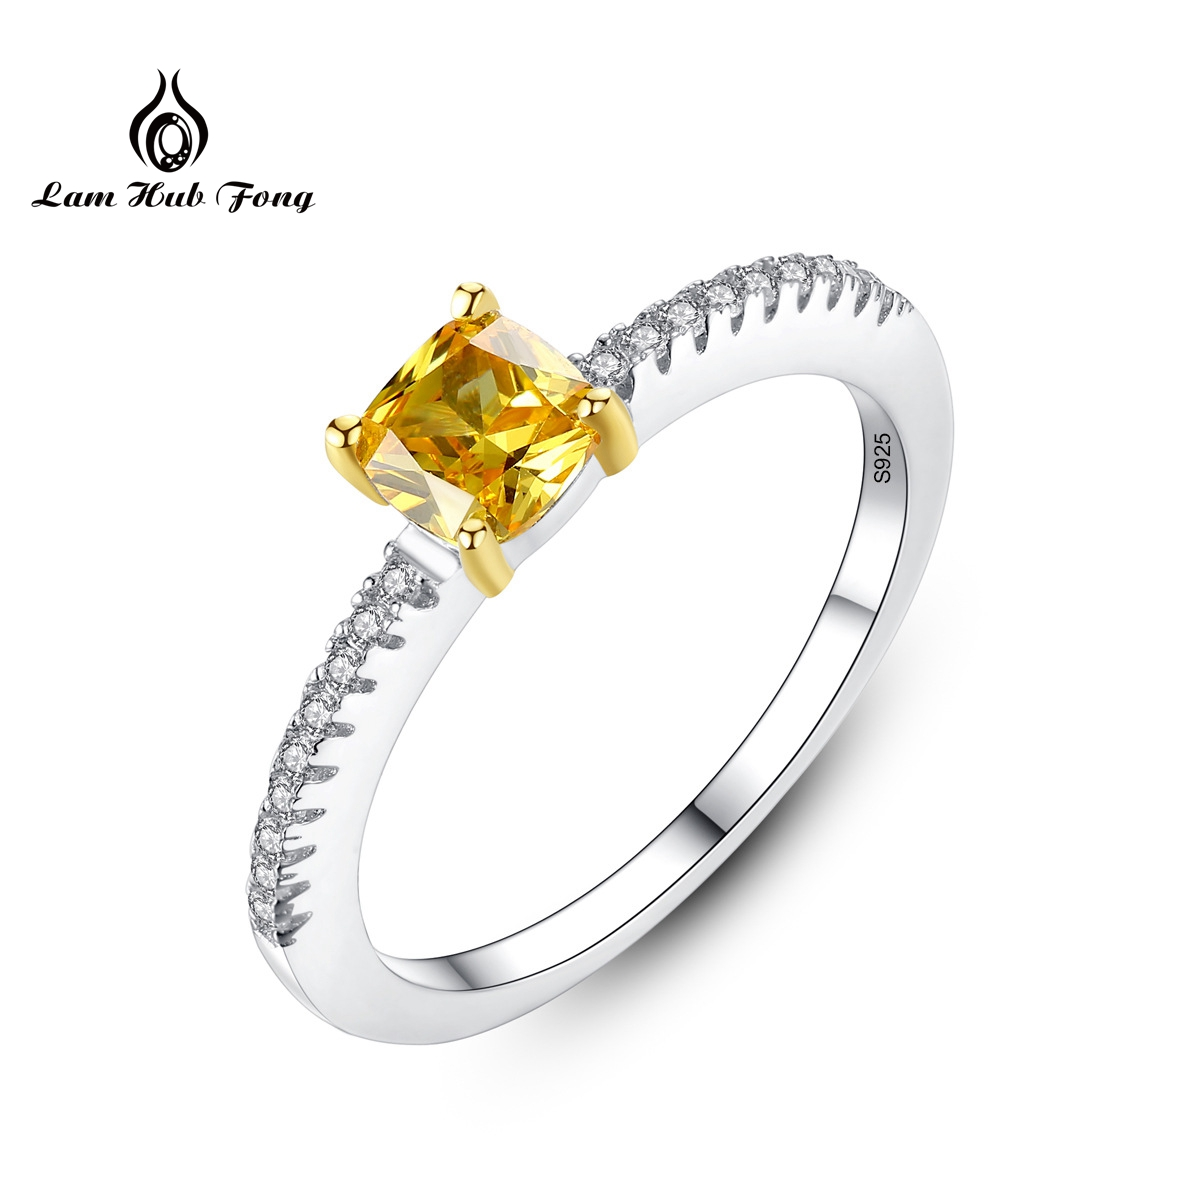 New Lady Luxury Square Natural Citrine Ring Birthstone Solitaire Ring Genuine 925 Sterling Silver Fine Jewelry For WomenNew Lady Luxury Square Natural Citrine Ring Birthstone Solitaire Ring Genuine 925 Sterling Silver Fine Jewelry For Women